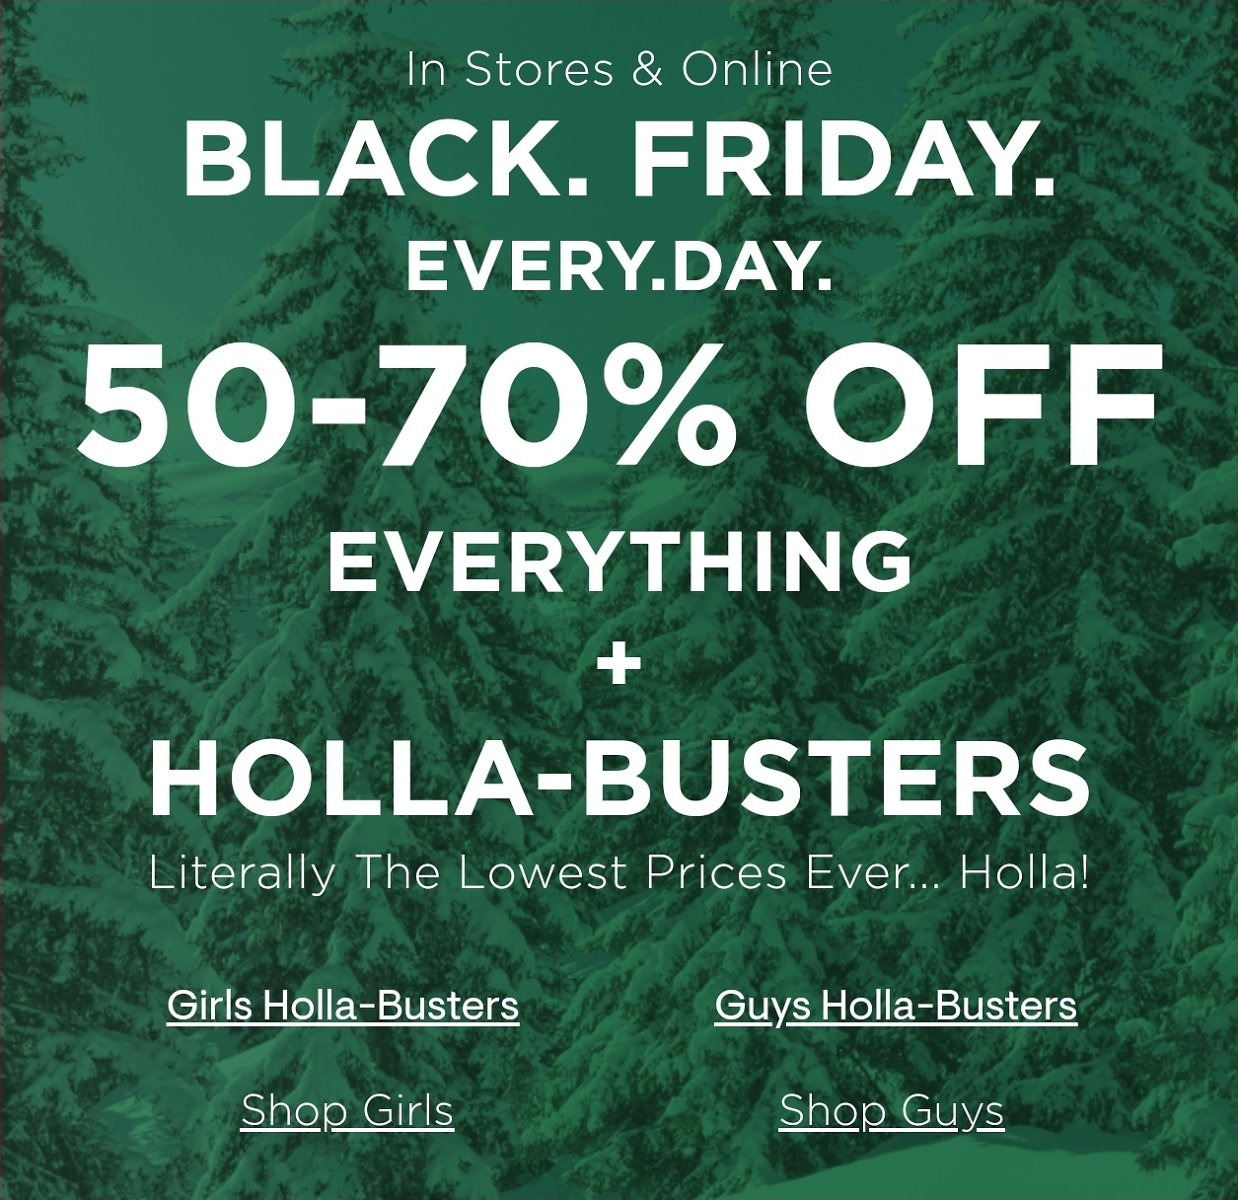 50-70% Off Everything + Holla-Busters